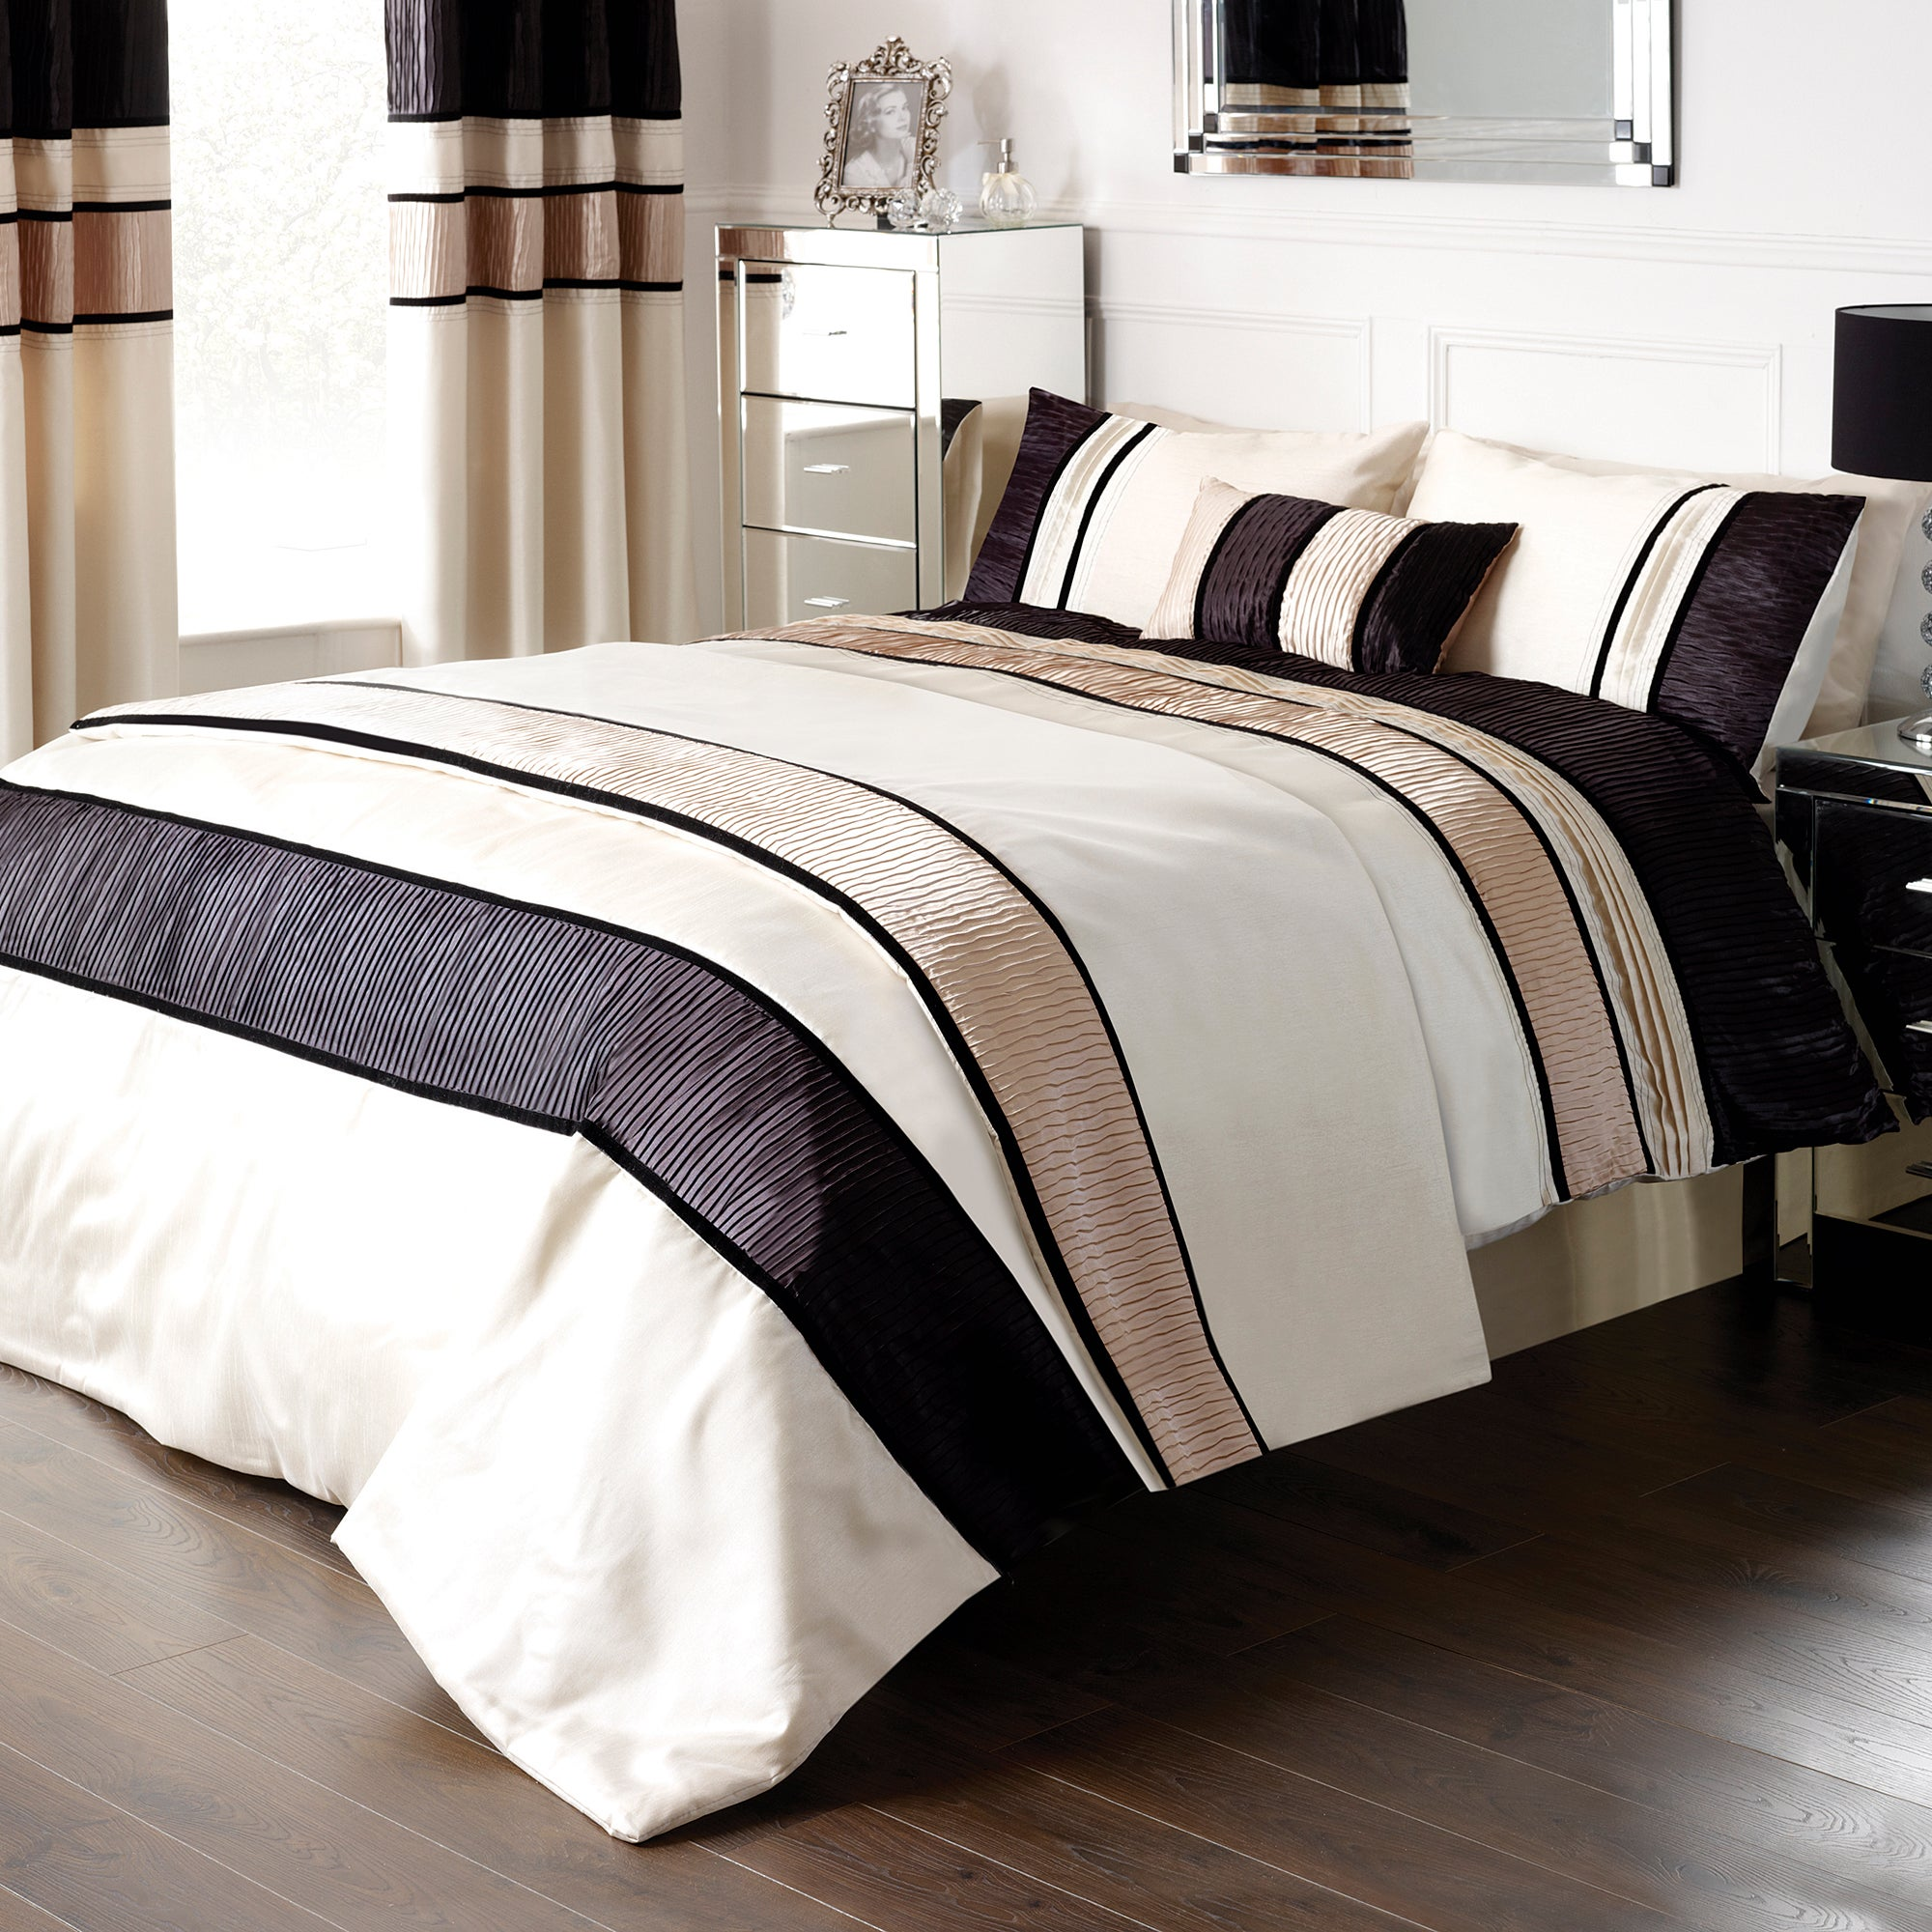 Black Manhattan Bedlinen Collection